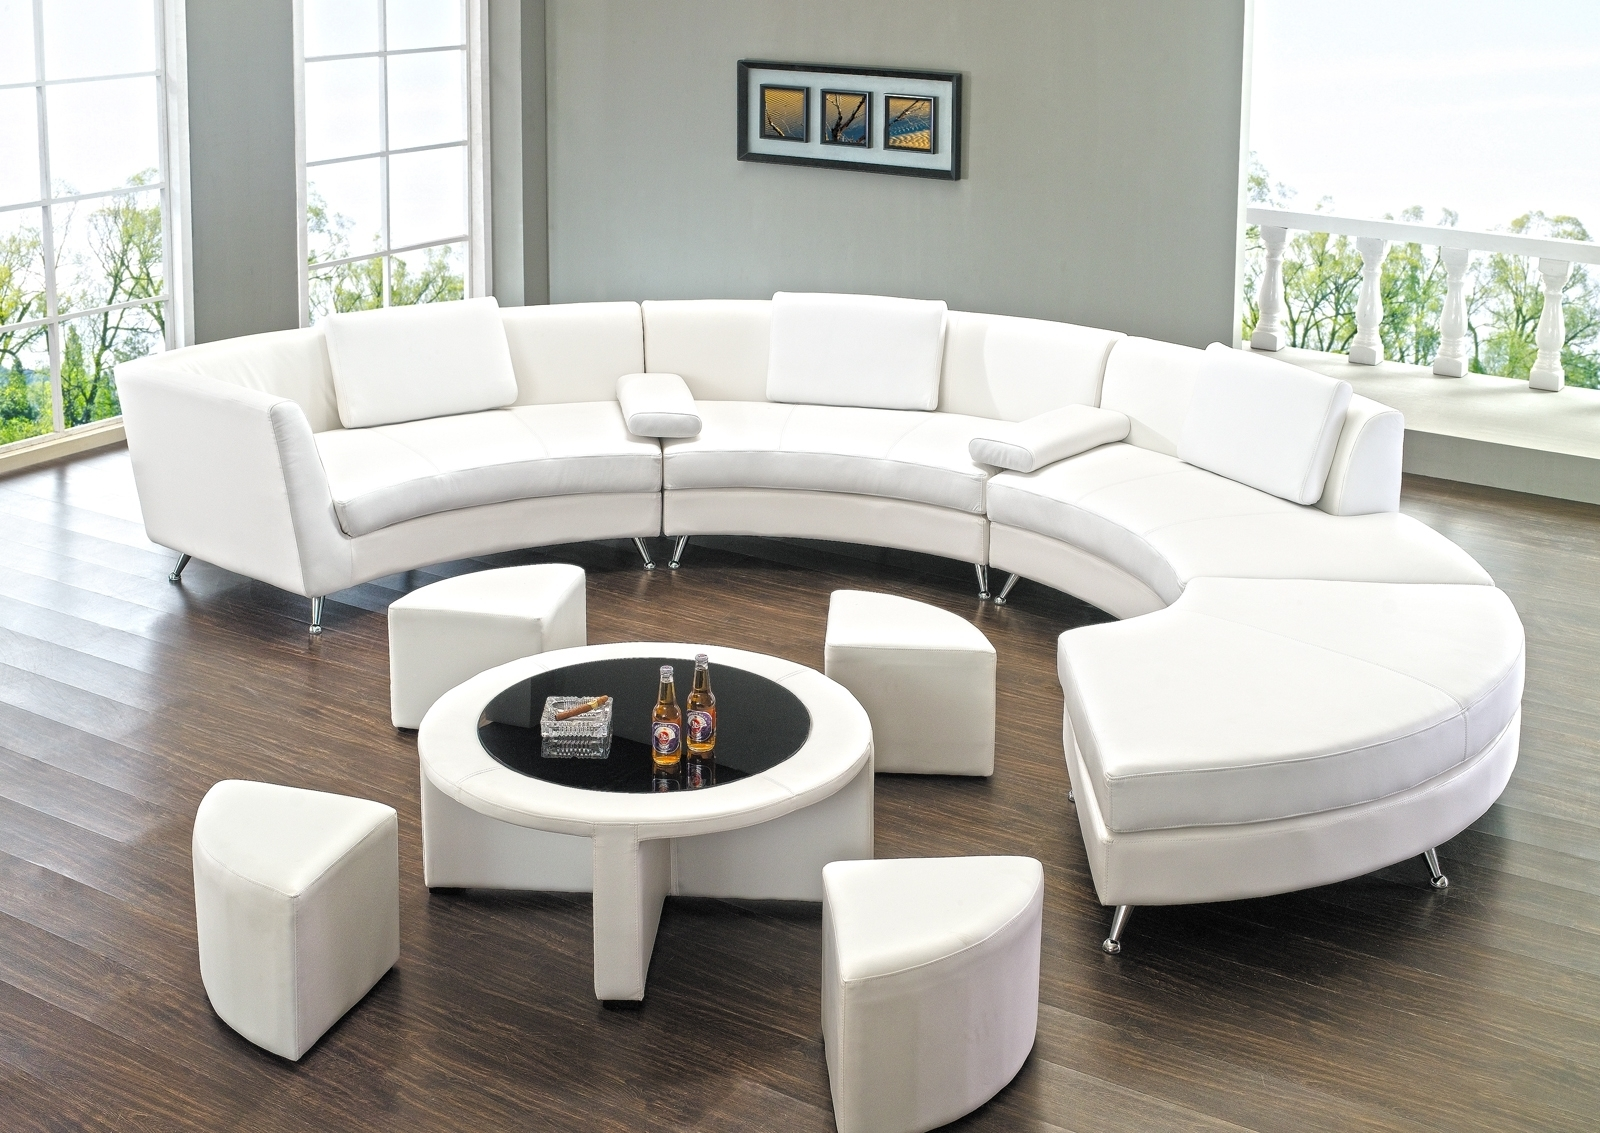 Round Sectional Sofa Has One Of The Best Kind Of Other Is Sectionals Intended For Circular Sectional Sofas (View 3 of 10)